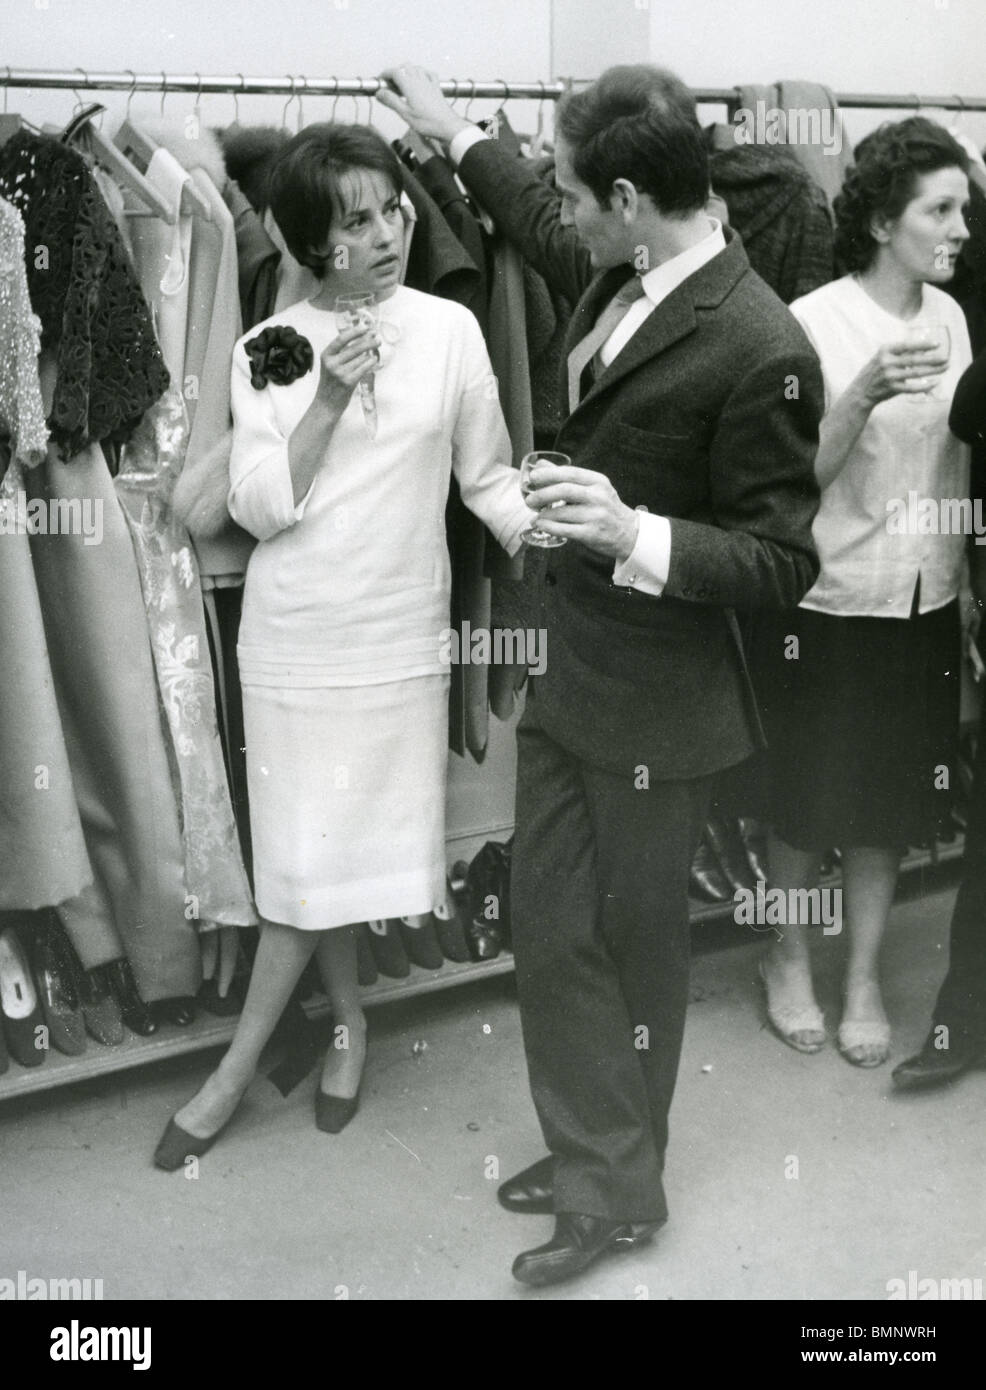 PIERRE CARDIN - French fashion designer at his Paris salon with French actress Jeanne Moreau about 1970 - Stock Image